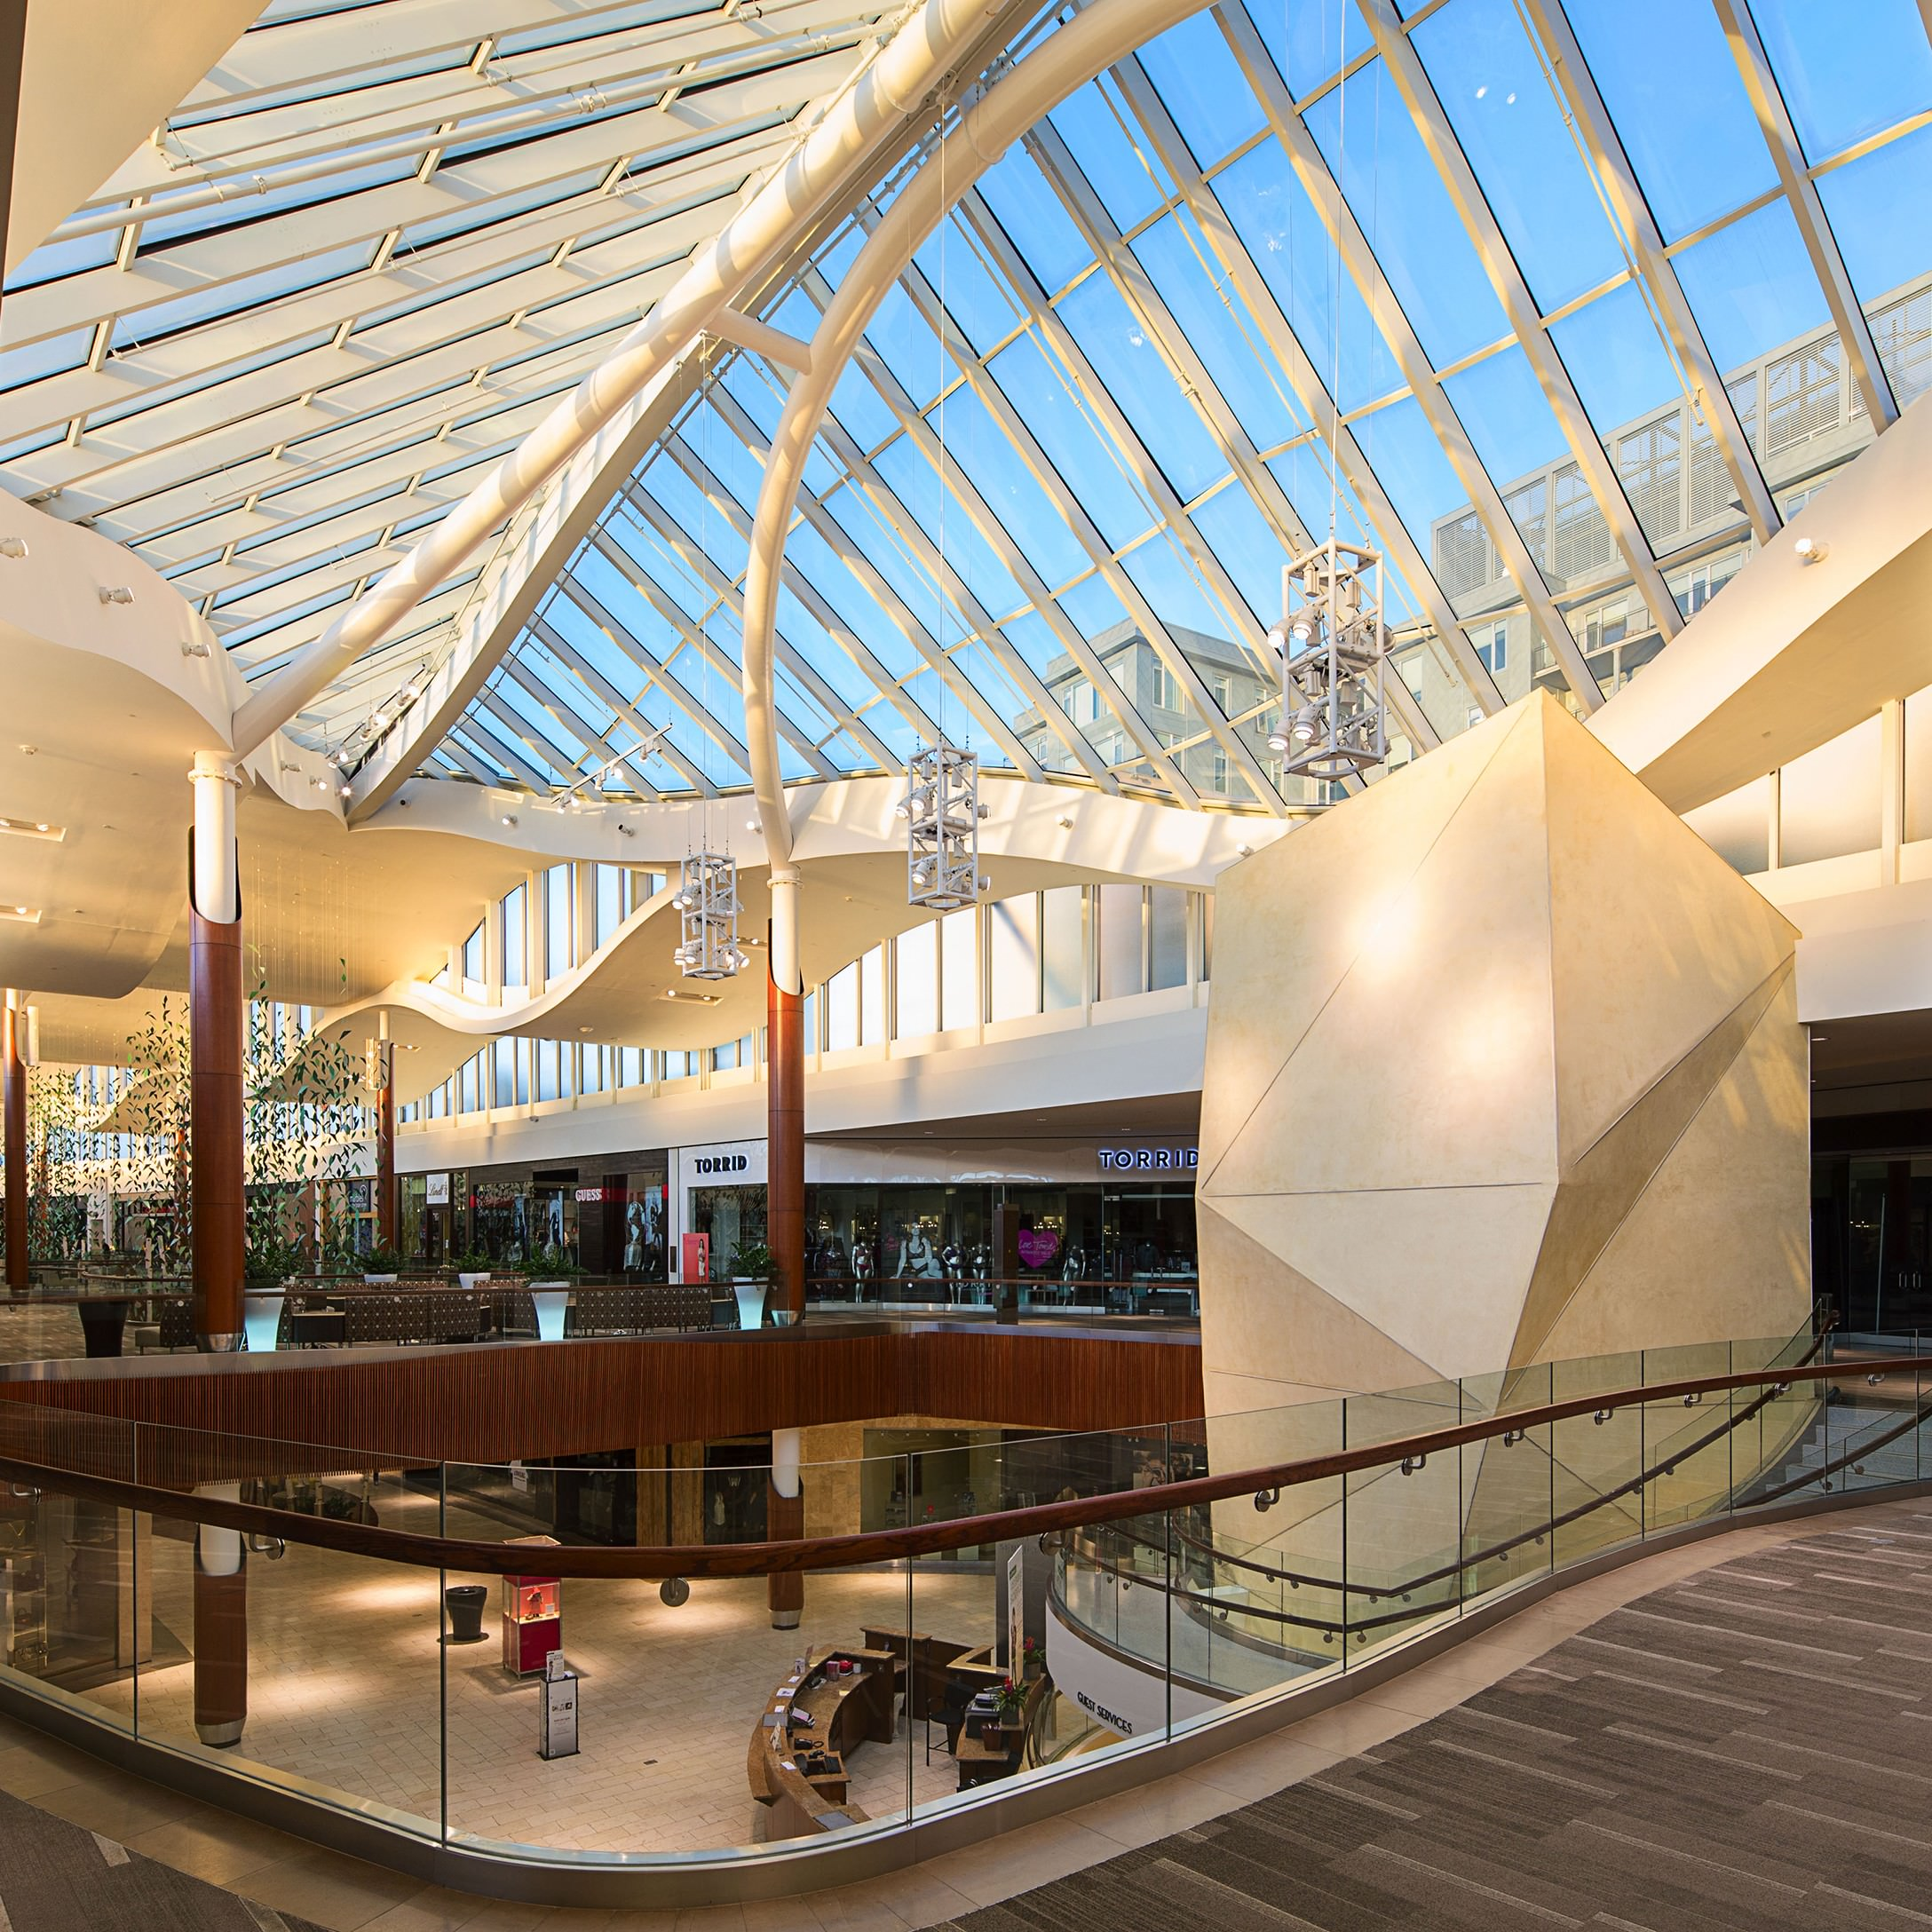 Natick Mall's second level interior overlooking a common area